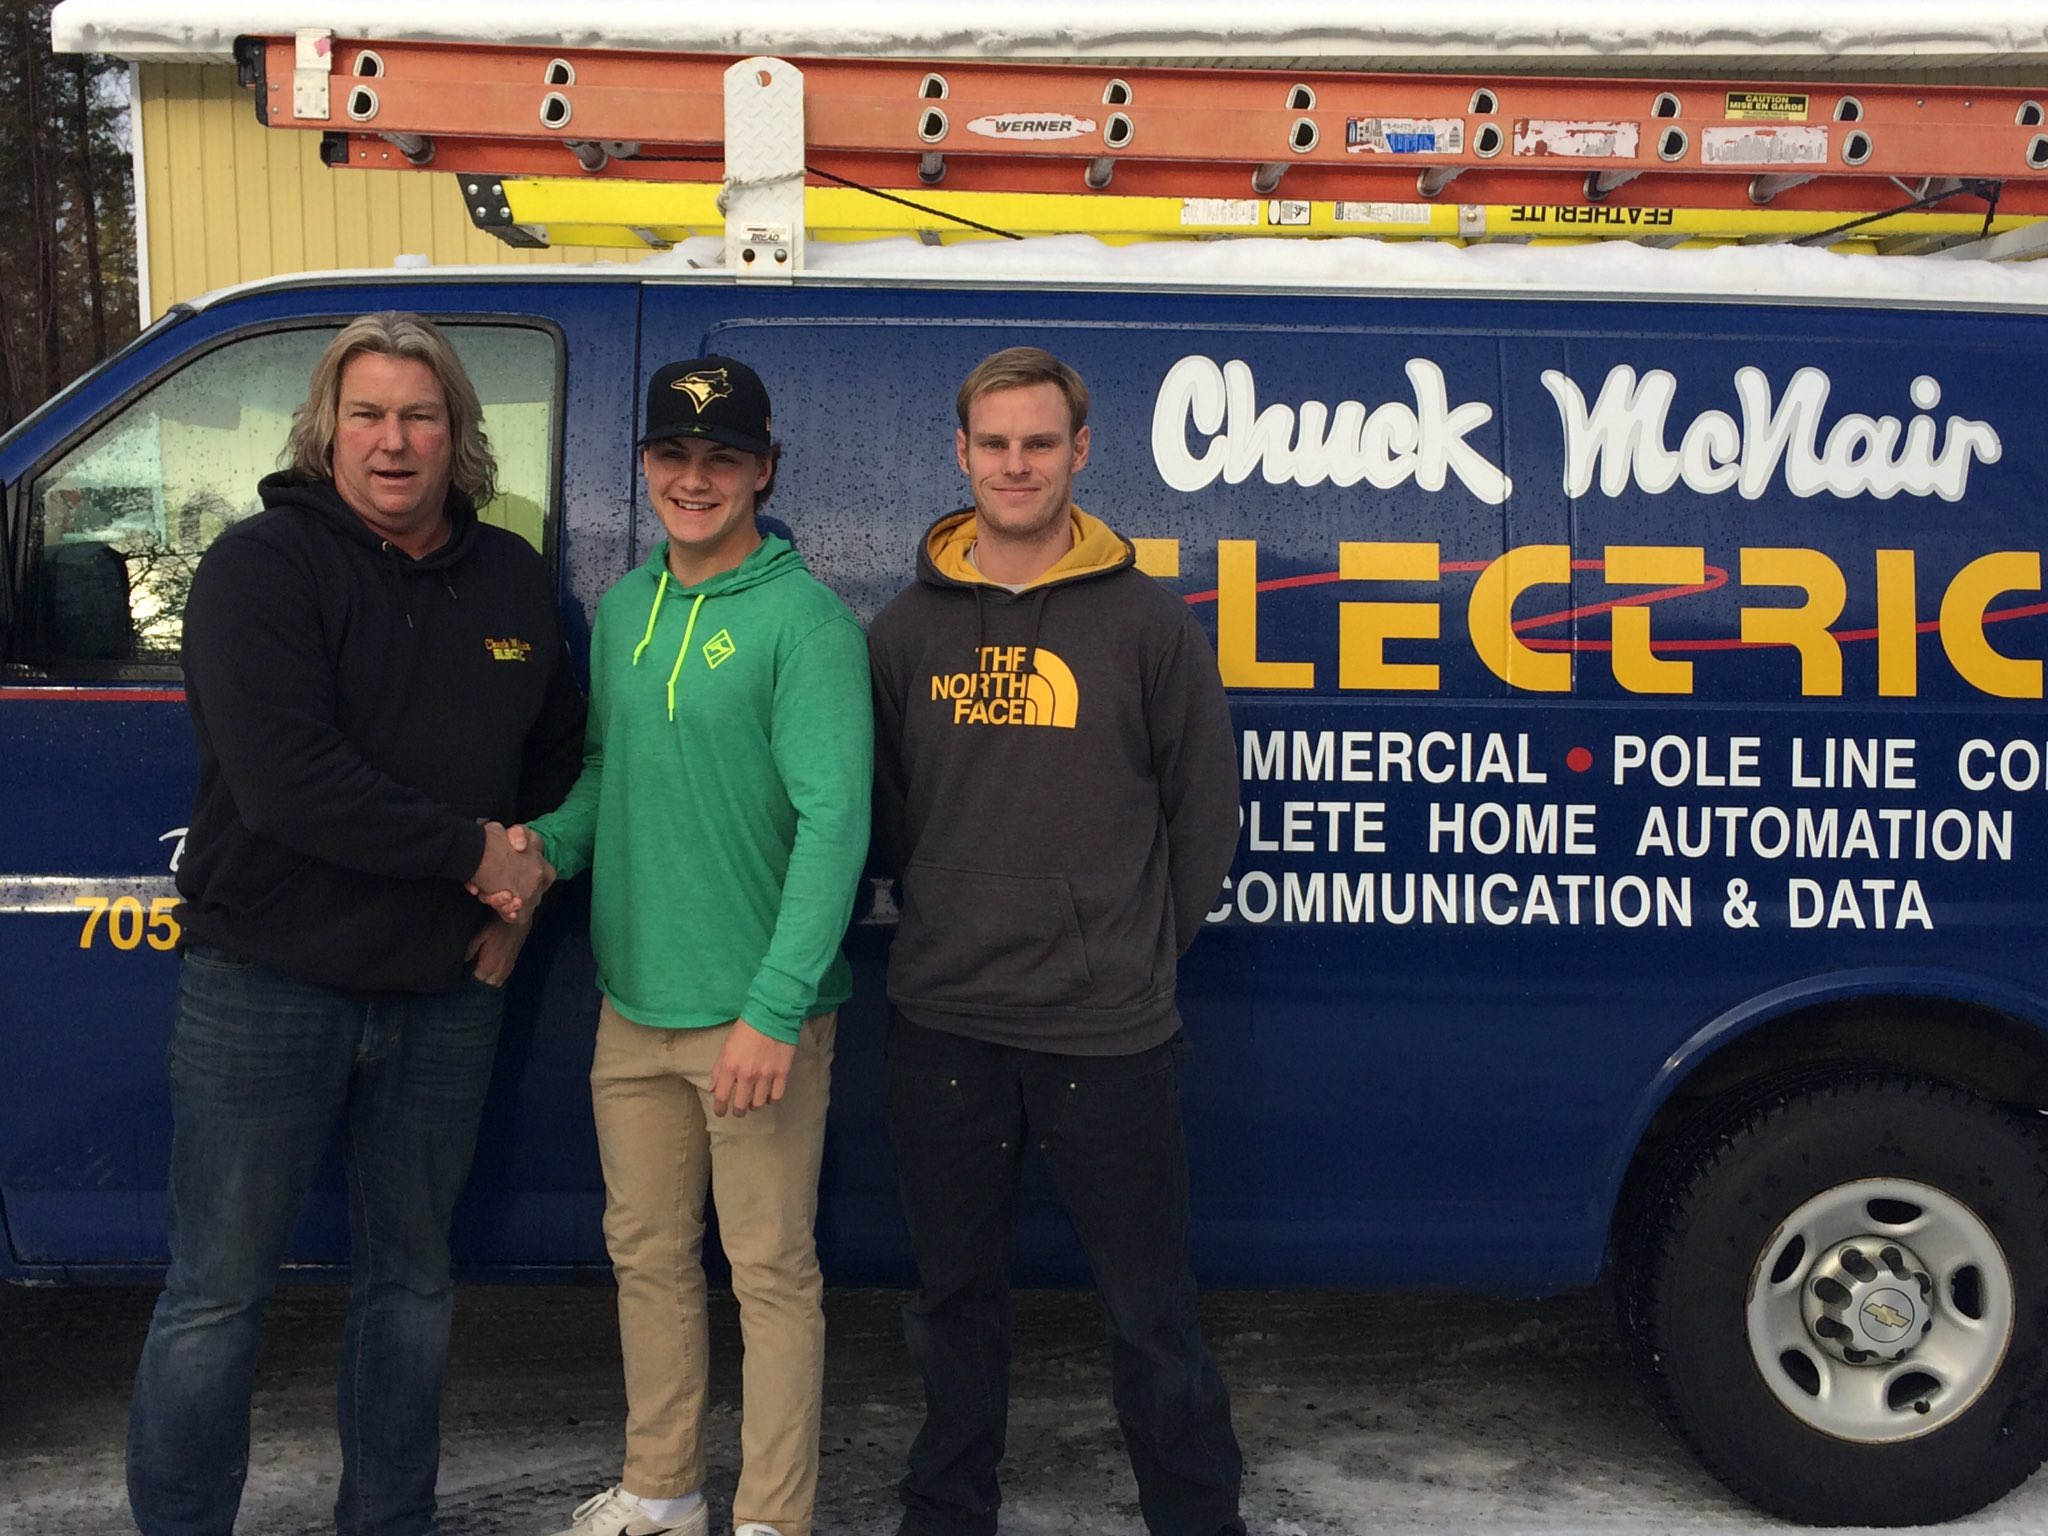 Taylor McCoy is now a registered Electrical Apprentice at Chuck McNair Electric @tldsboyap @infobml @_studentsuccess #tldsblearns https://t.co/f2aNf4zO1B